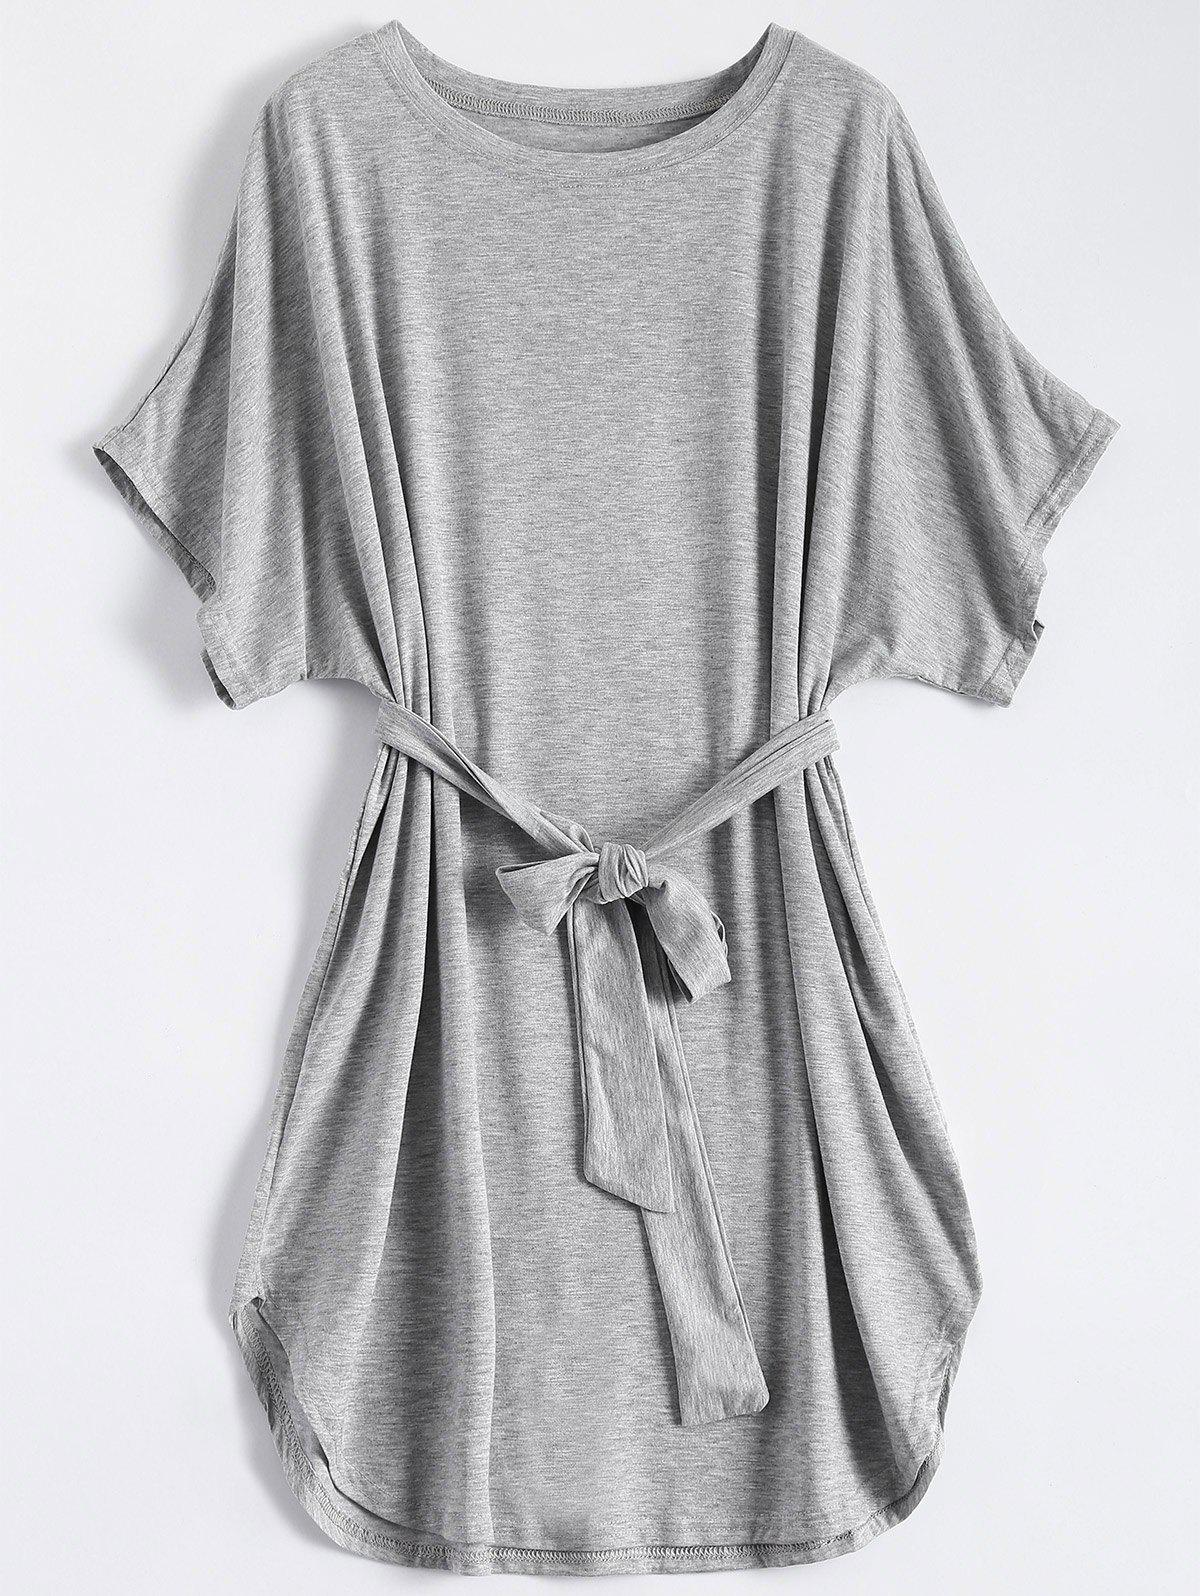 Casual Batwing Sleeve Belted Mini Dress - GRAY 2XL